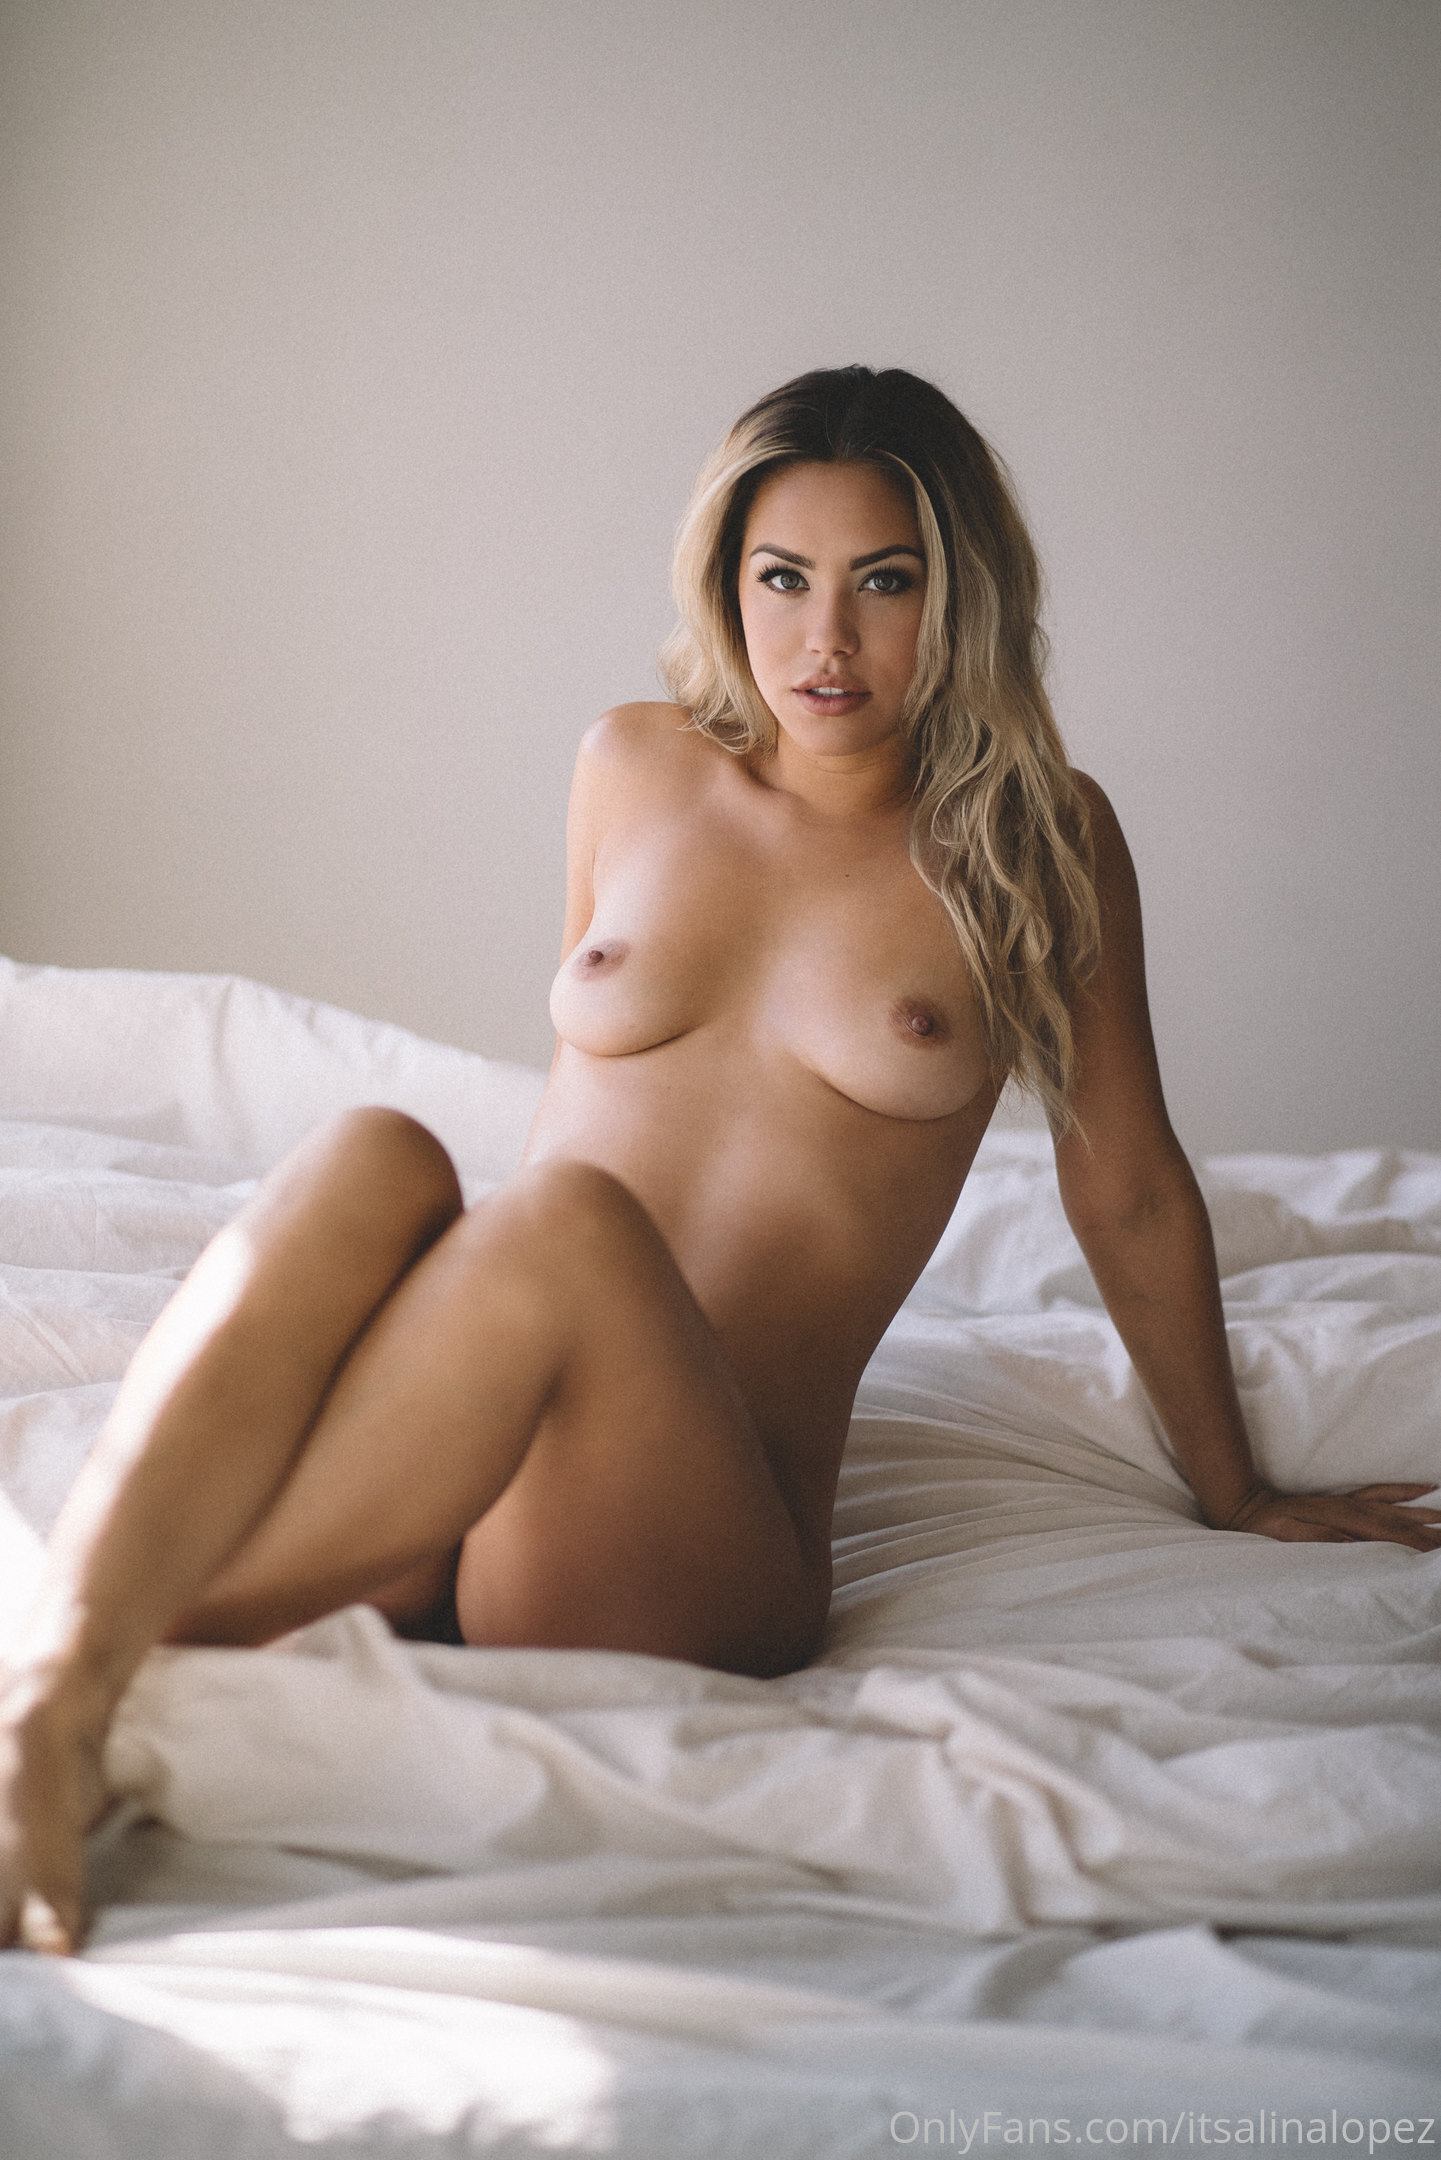 Alina Lopez Onlyfans Nude Gallery Leaked